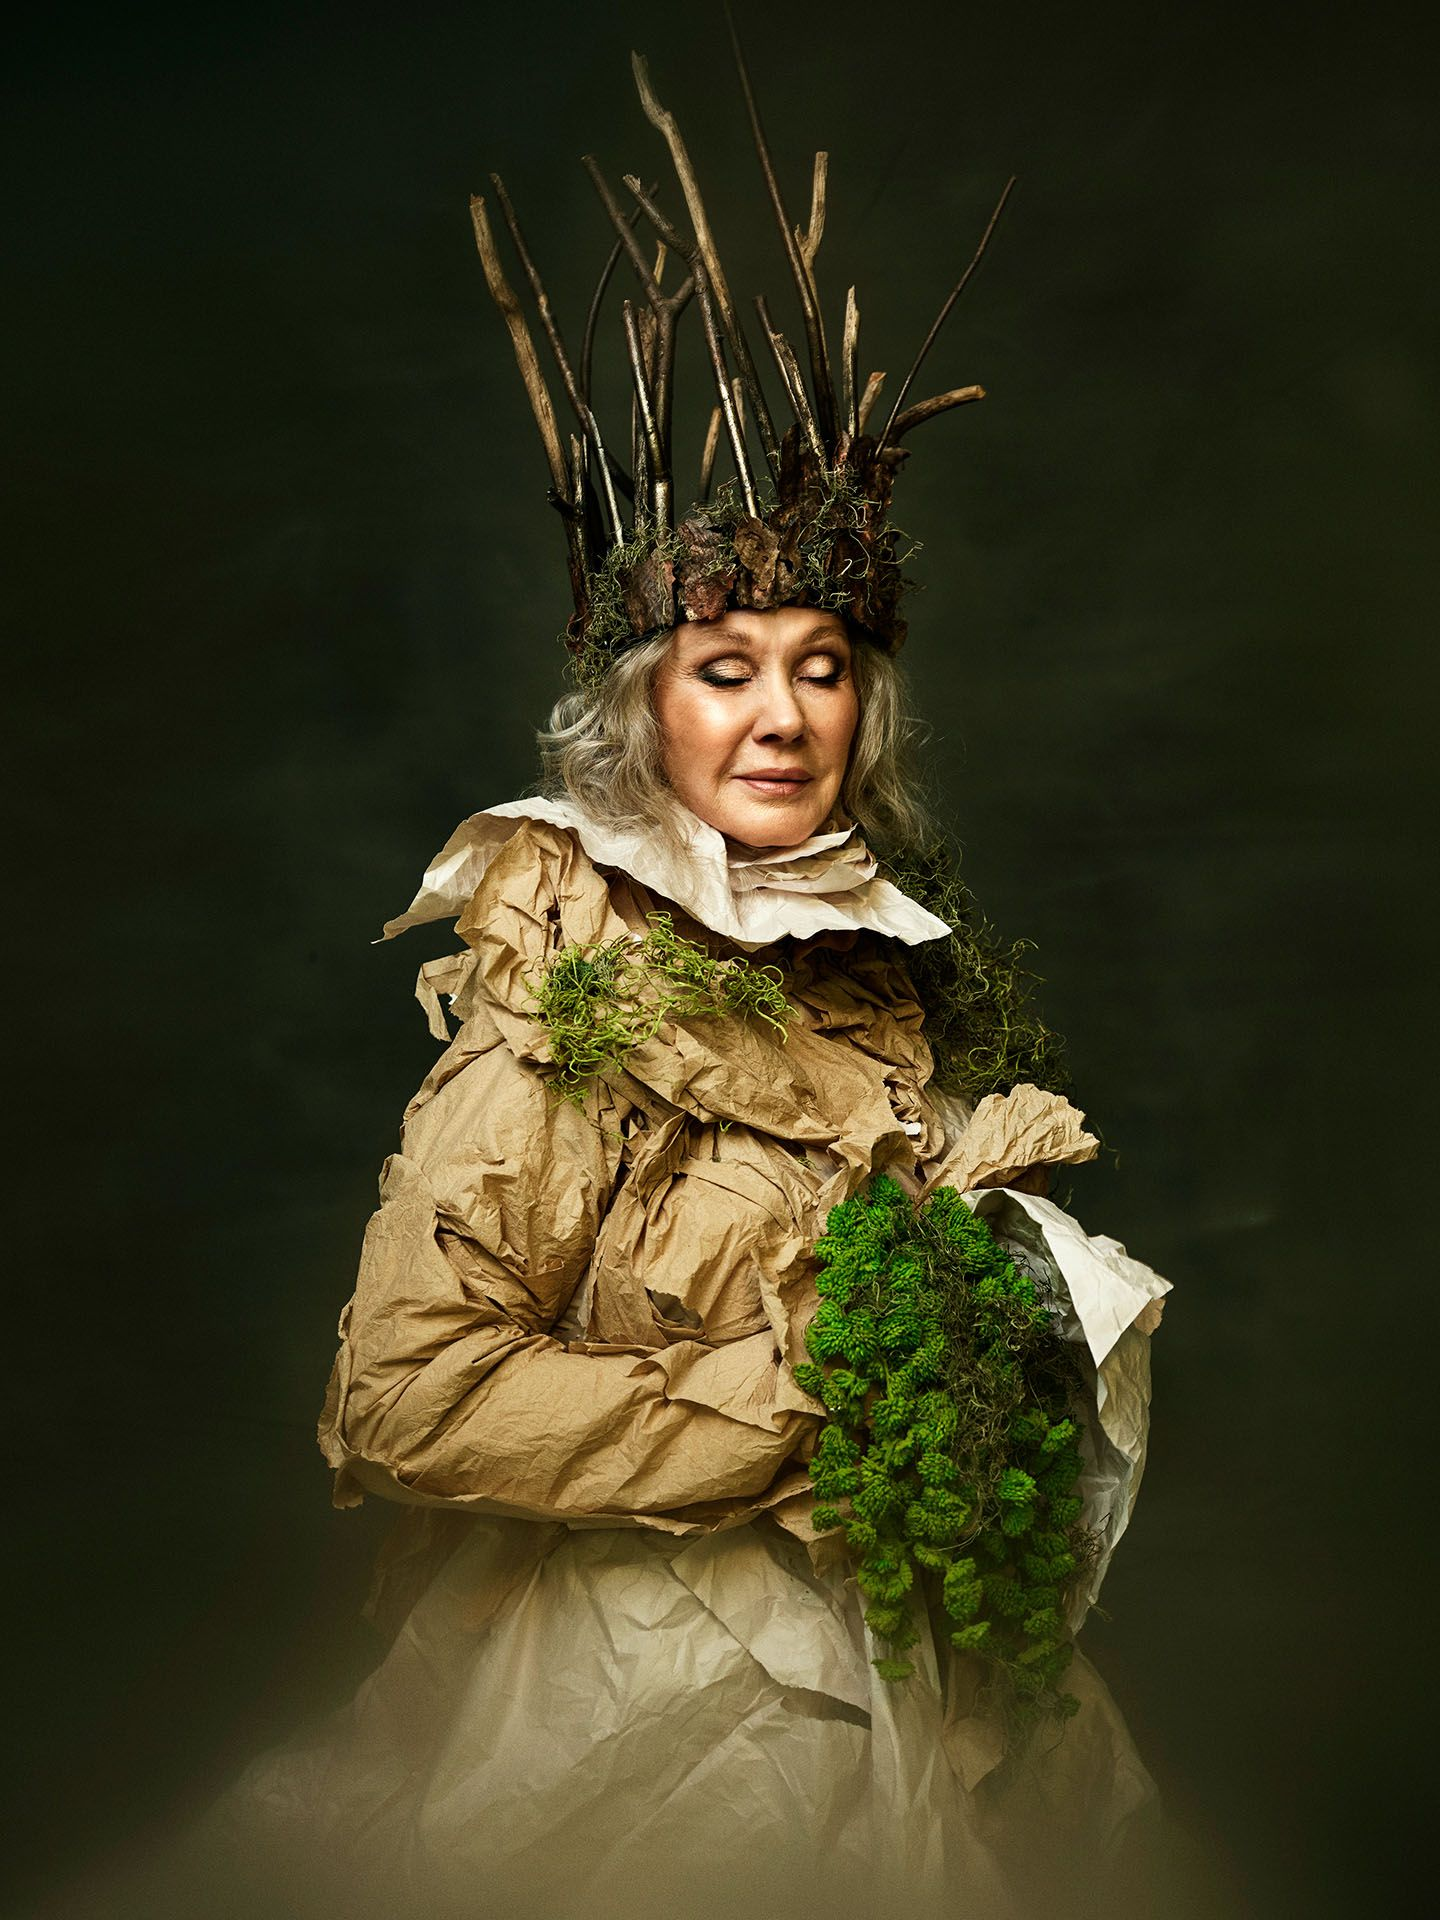 portrait of Diane Dufresne dressed in long brown paper dress with wood branches crown and moss bouquet by Jocelyn Michel for Voir